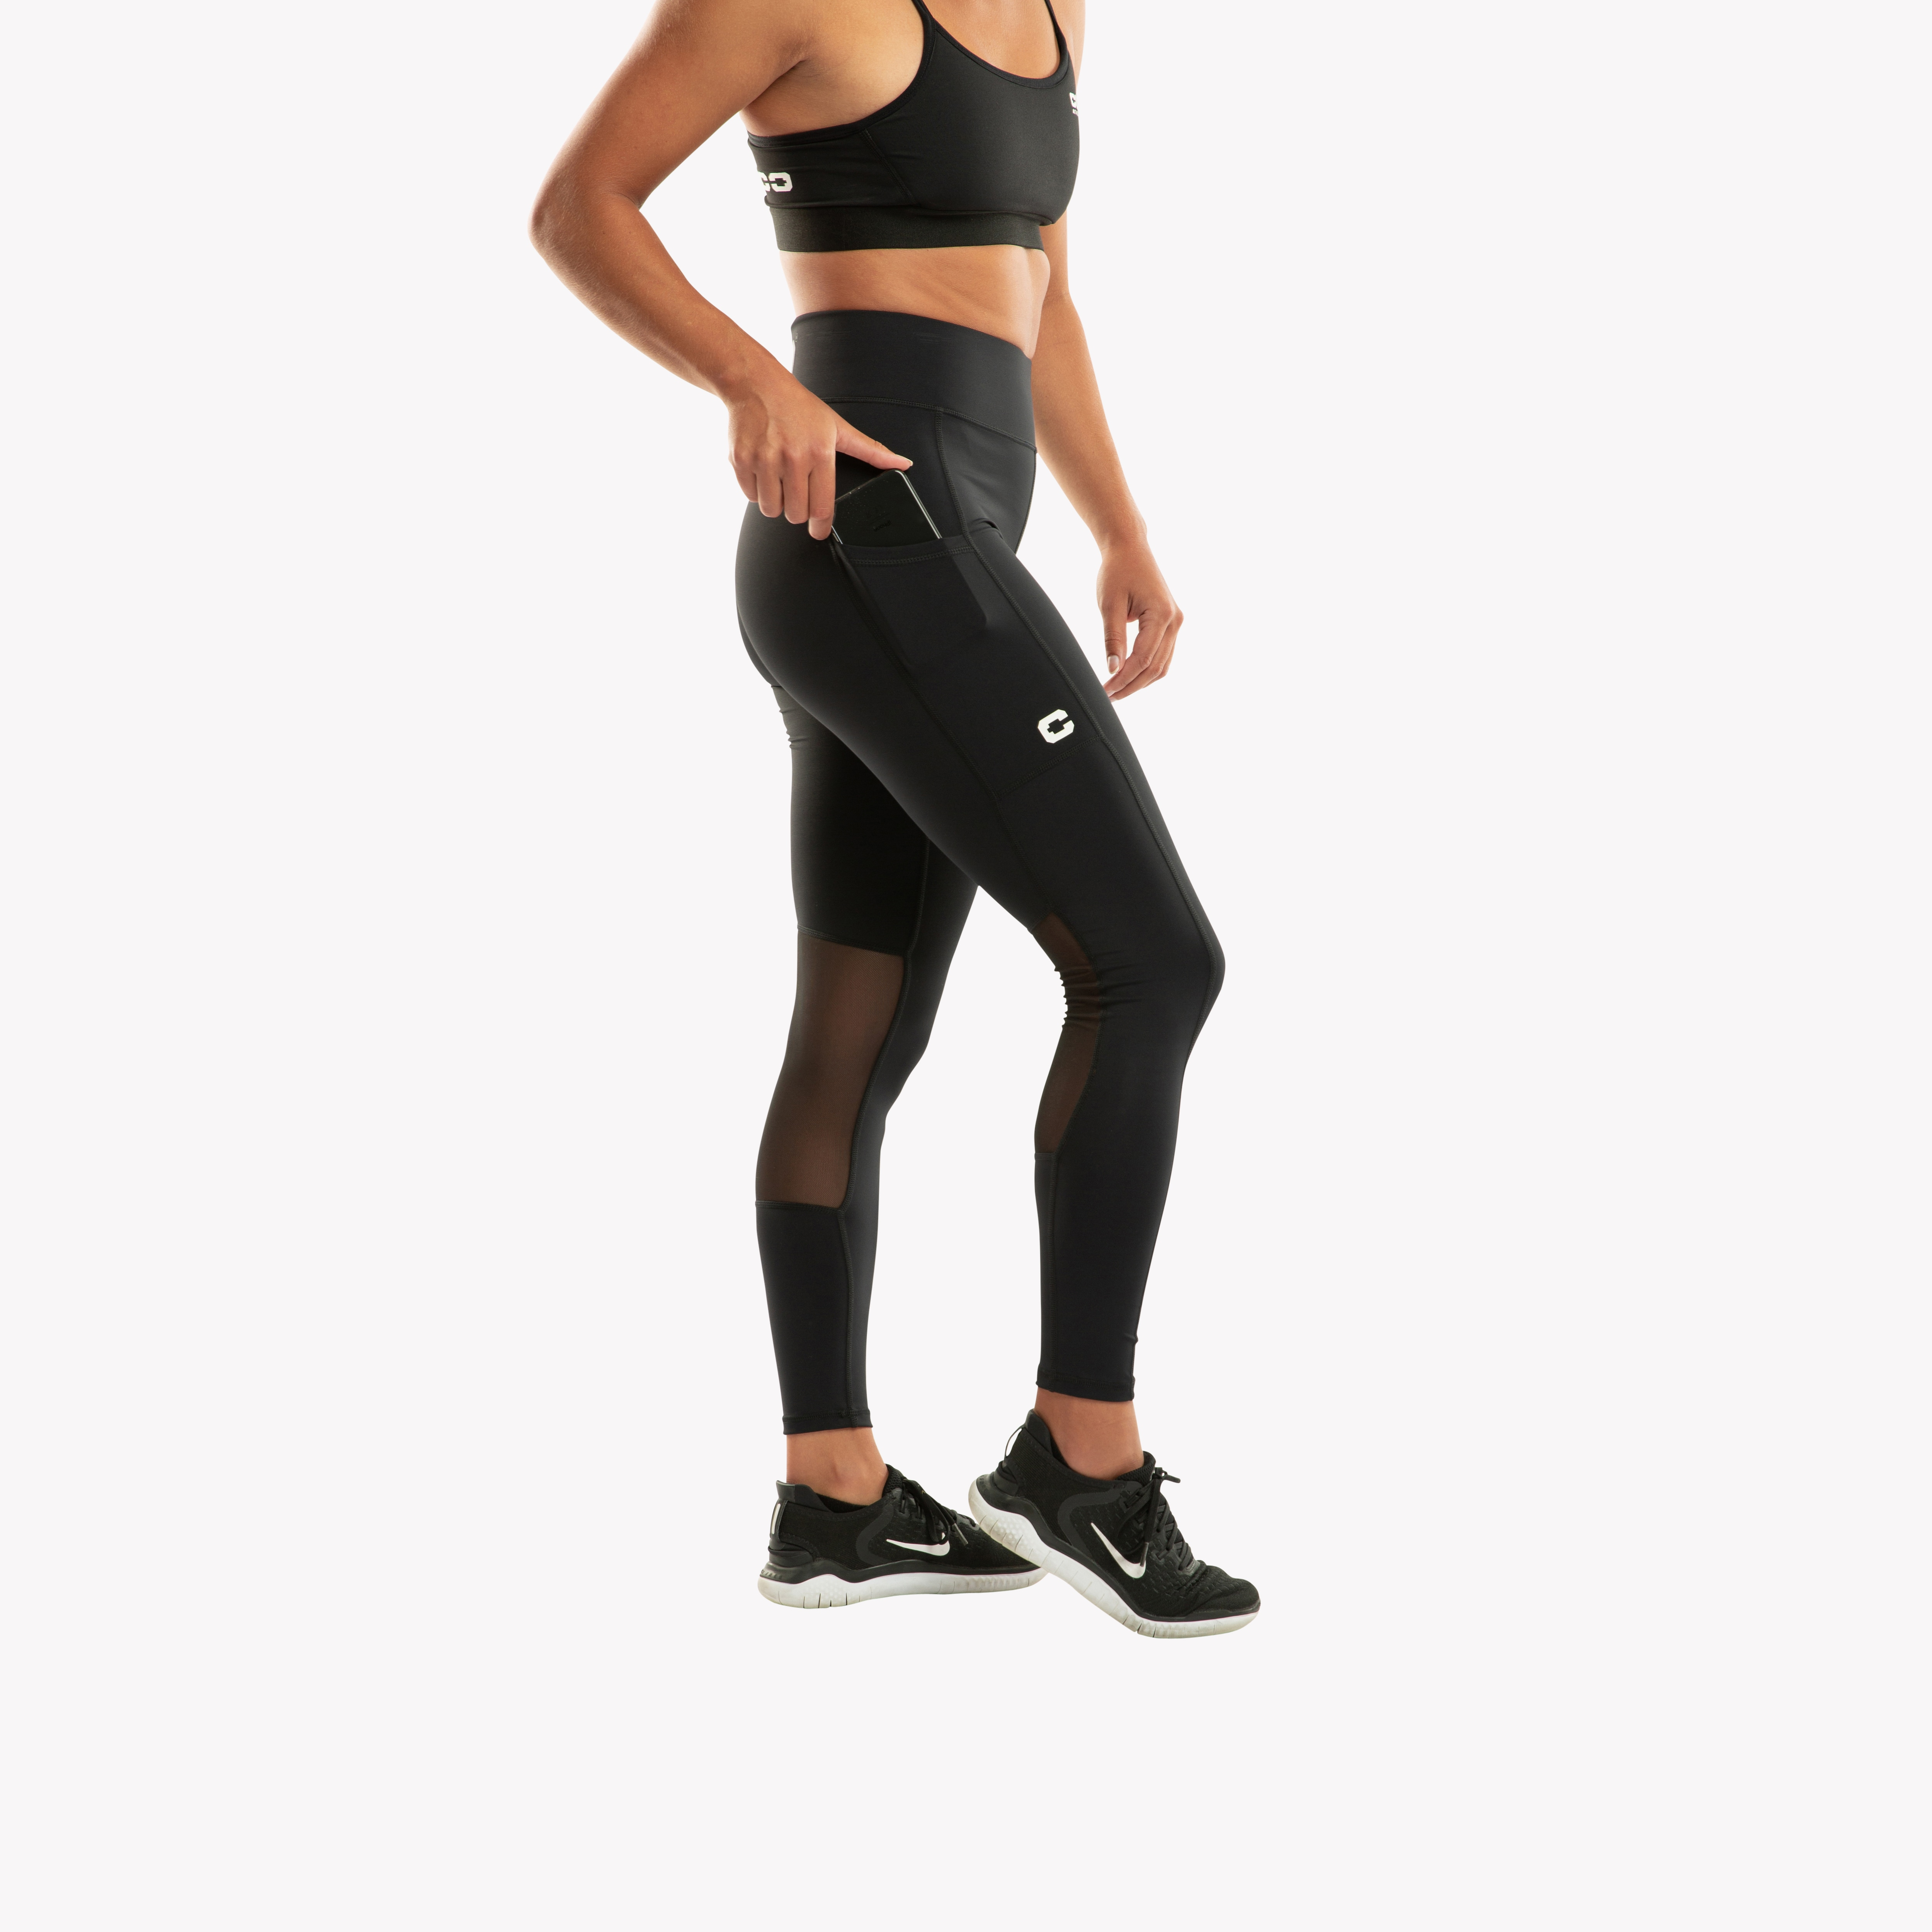 CLN Sting ws tights Black